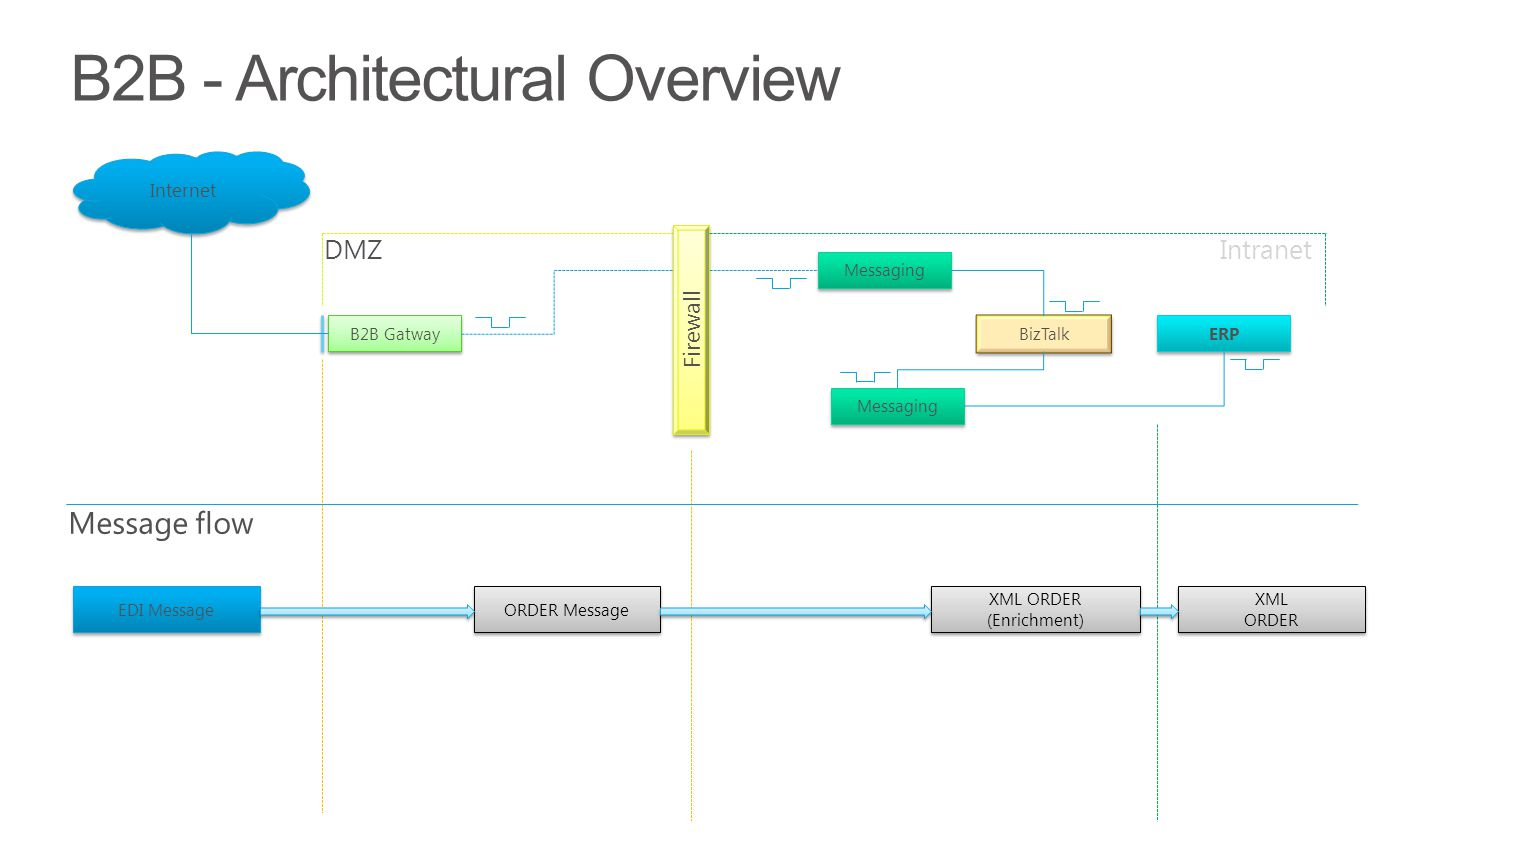 B2B - Architectural Overview